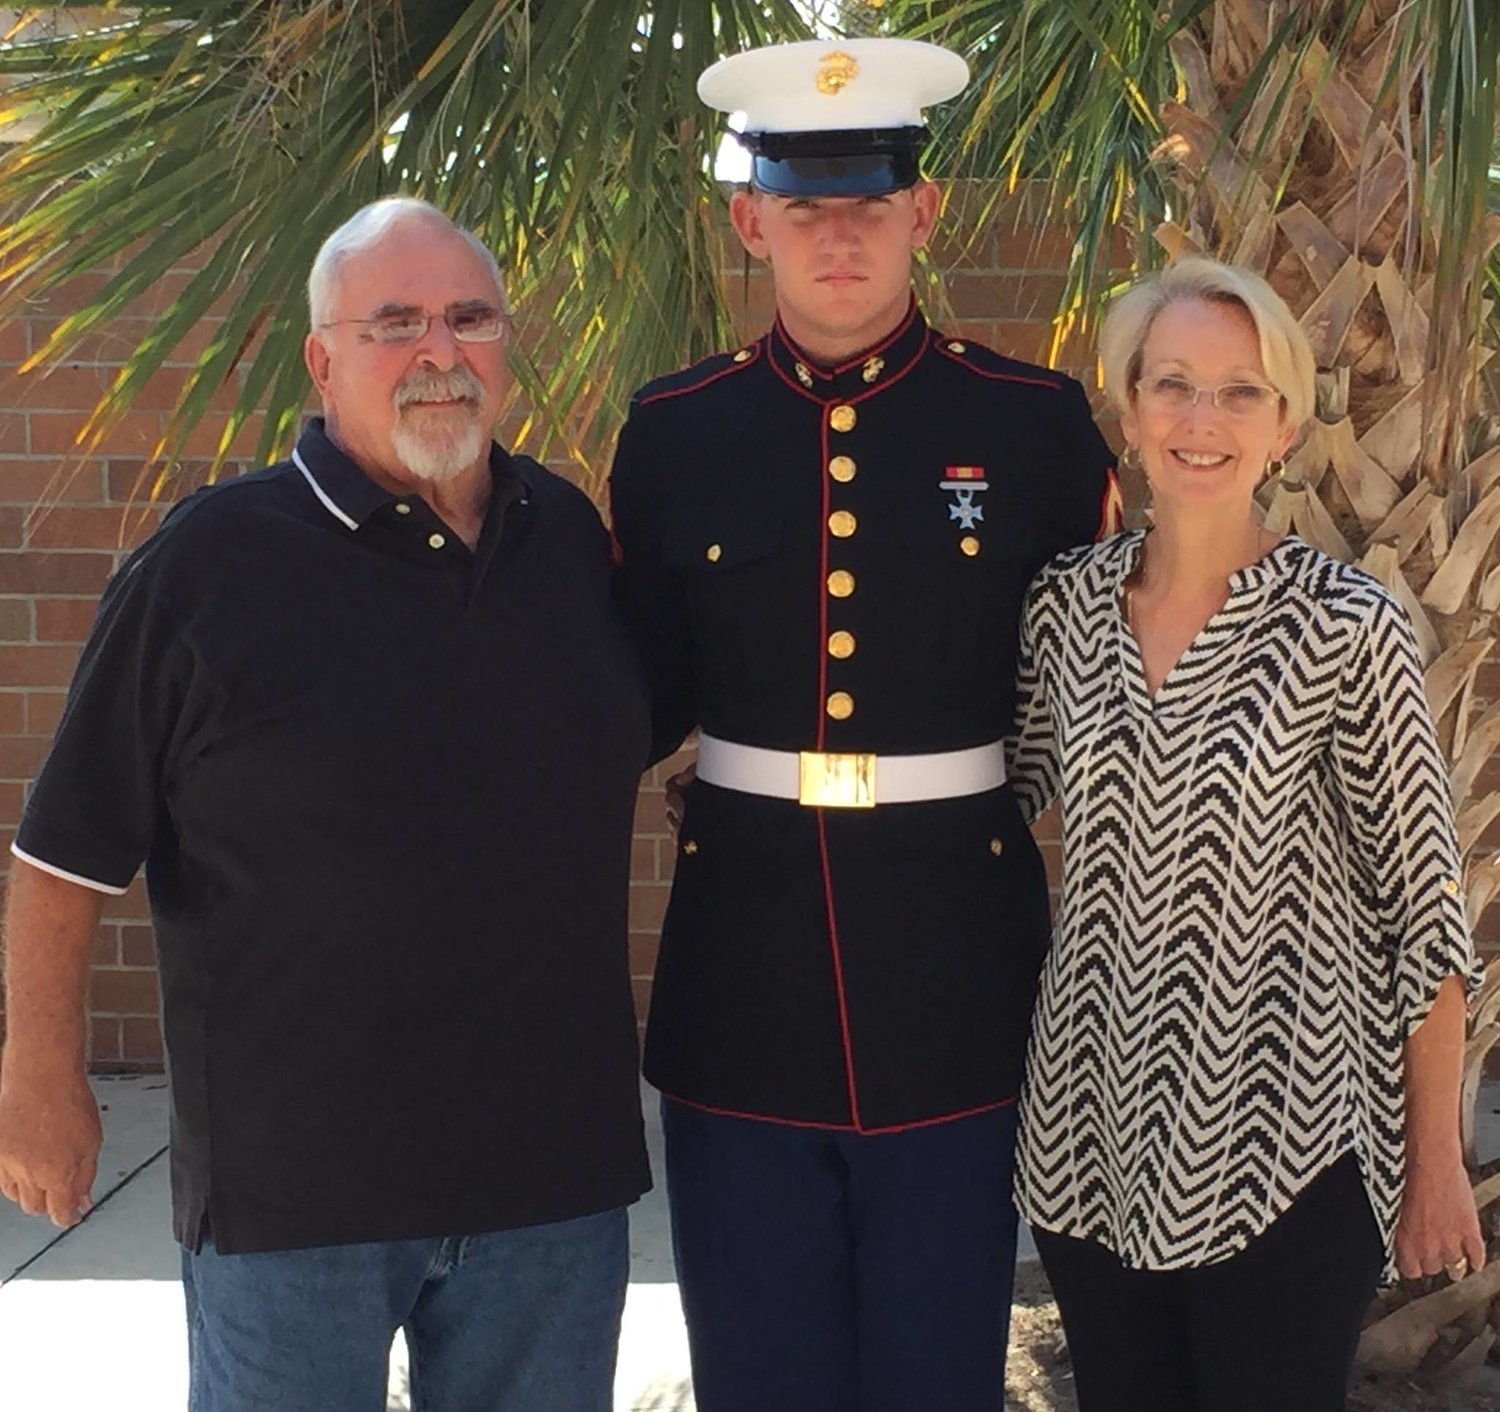 Jacob DuPree is pictured with his grandparents, Bill and Yvonne McElheny, while home on leave in 2016.